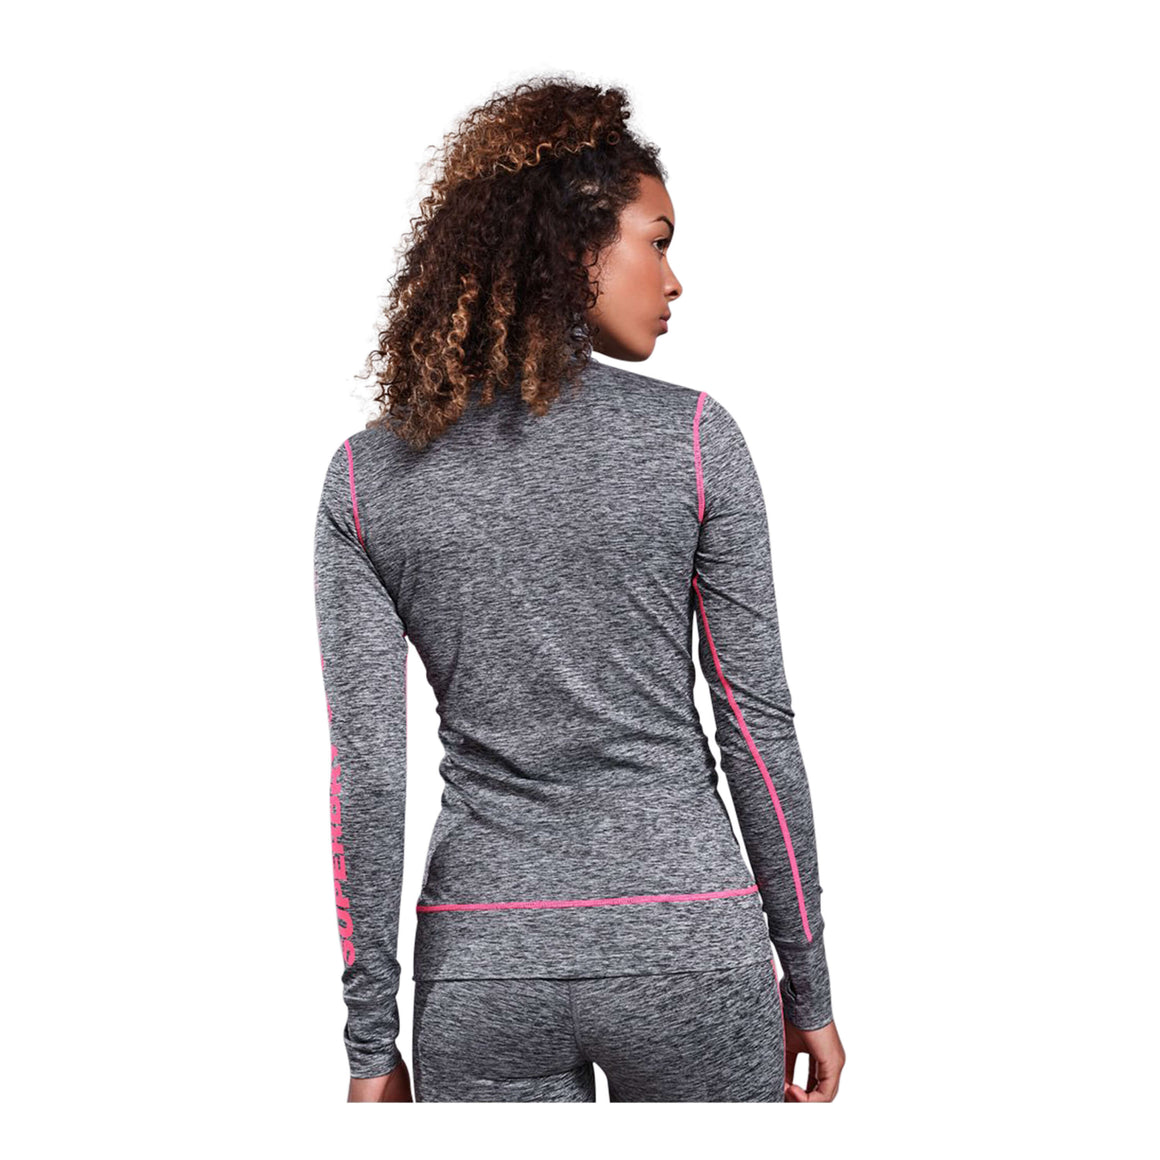 Performance Reflective Half Zip Top for Women in Black Marl